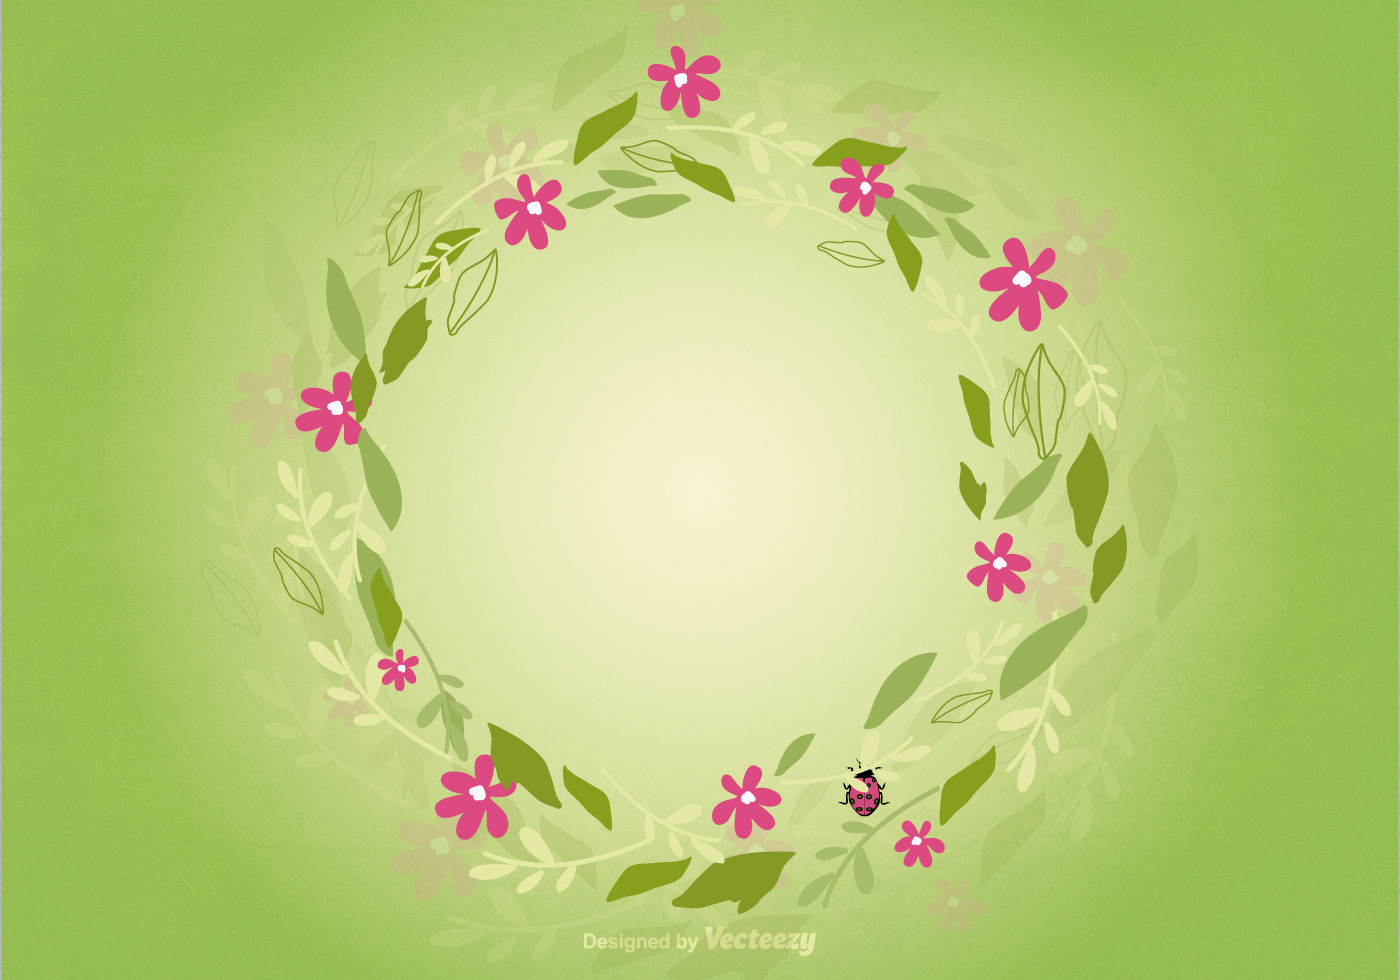 Floral Wreath Background Download Free Vector Art Stock